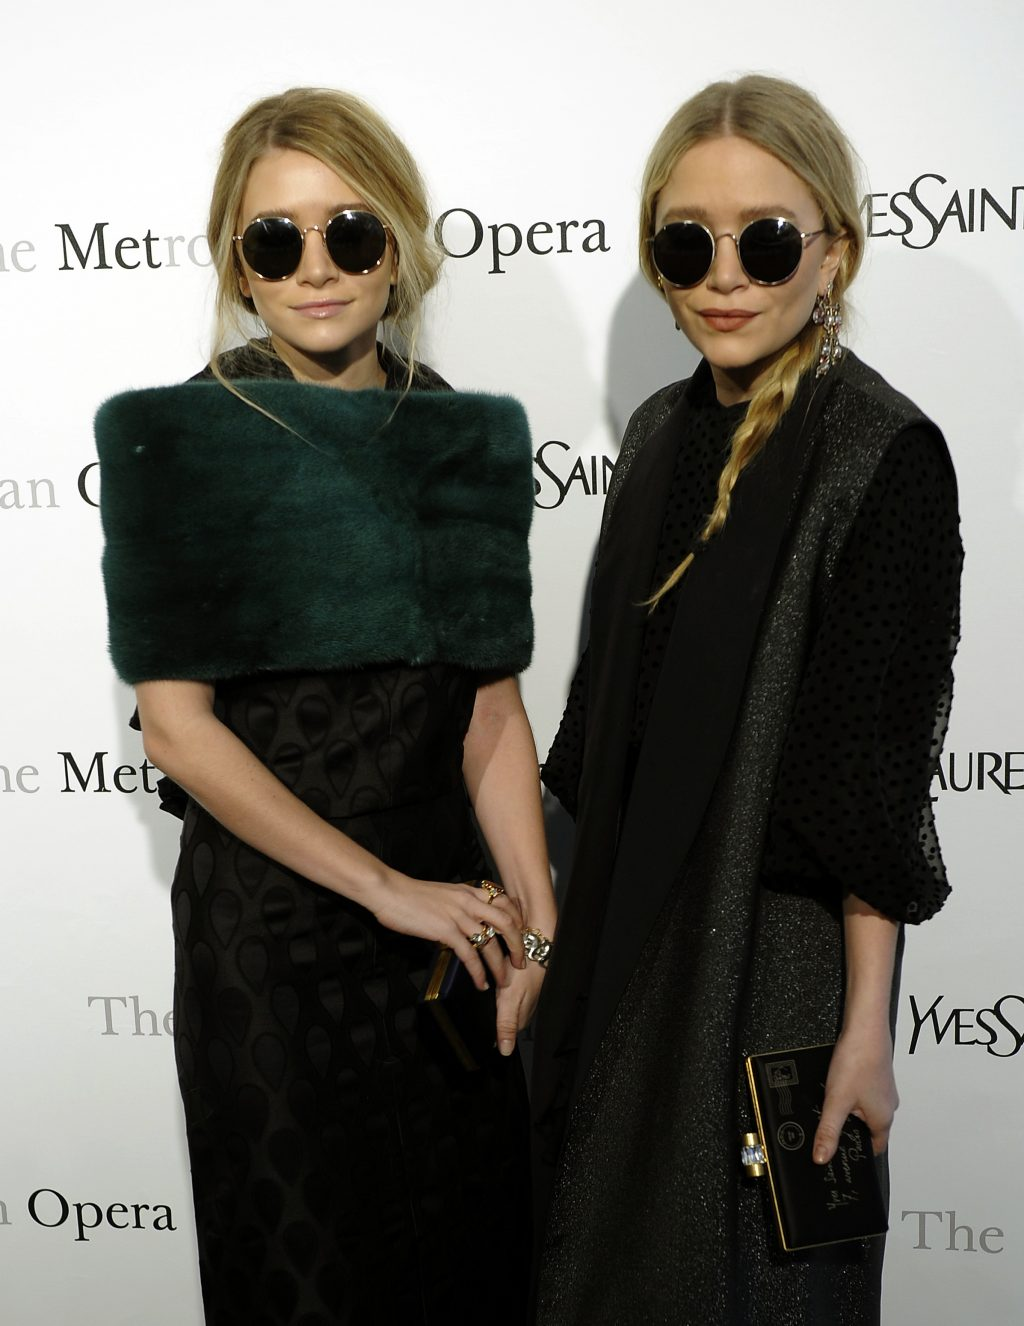 They've Got It, Dude! Shop the Olsens' Style in Honor of Their Birthday